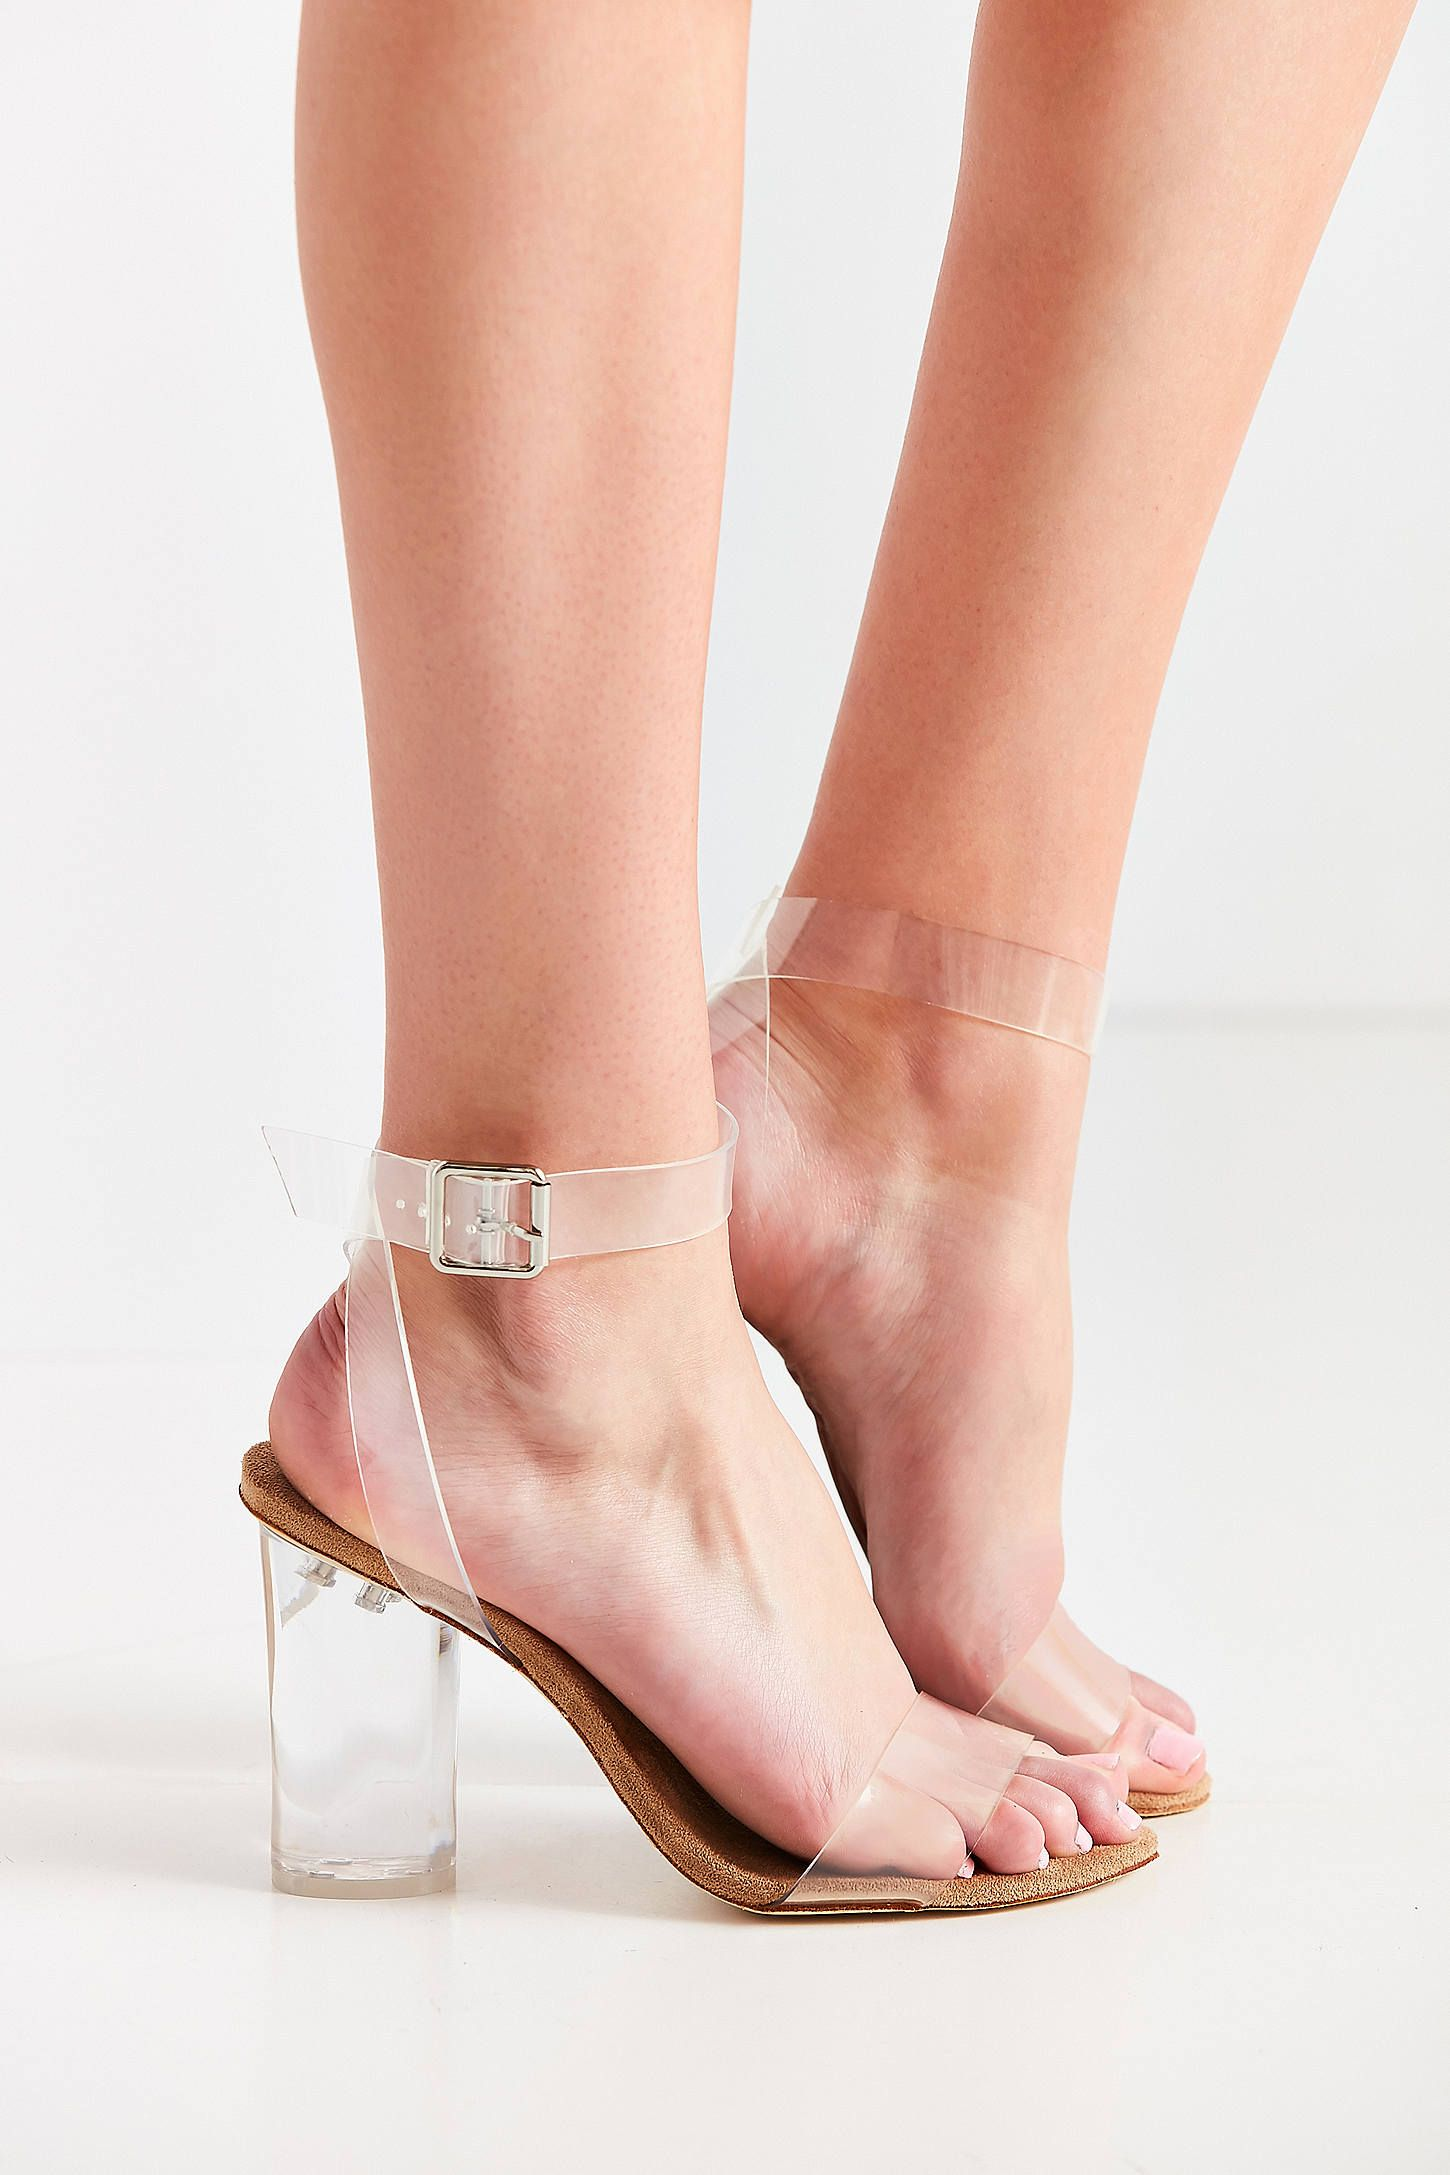 34dffb27223 Shop Jeffrey Campbell Twelve Heel at Urban Outfitters today. We carry all  the latest styles